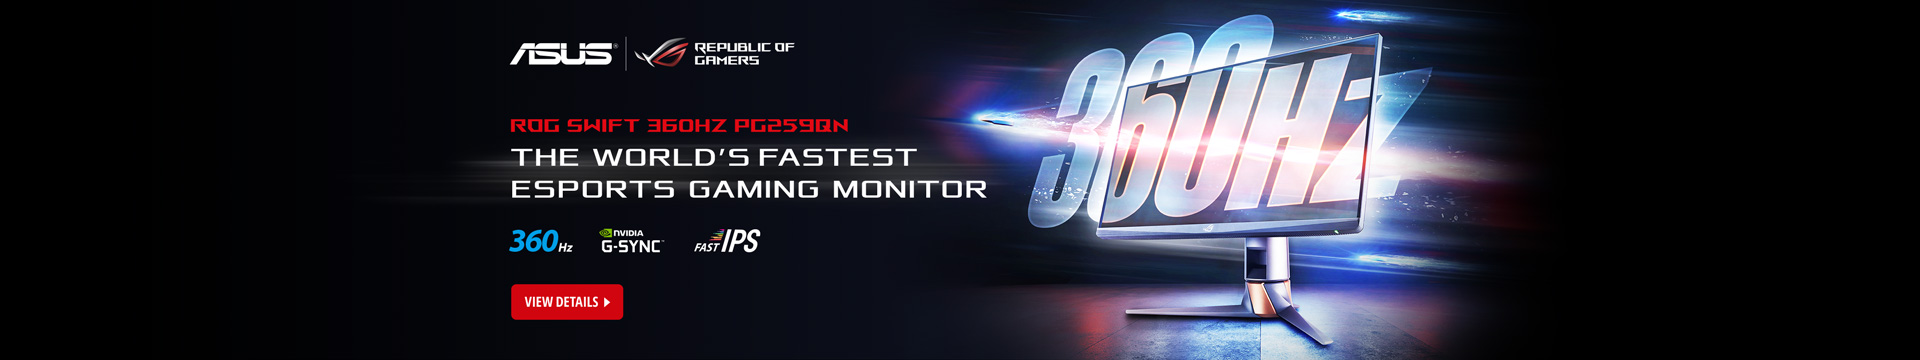 The World's Fastest Esports Gaming Monitor